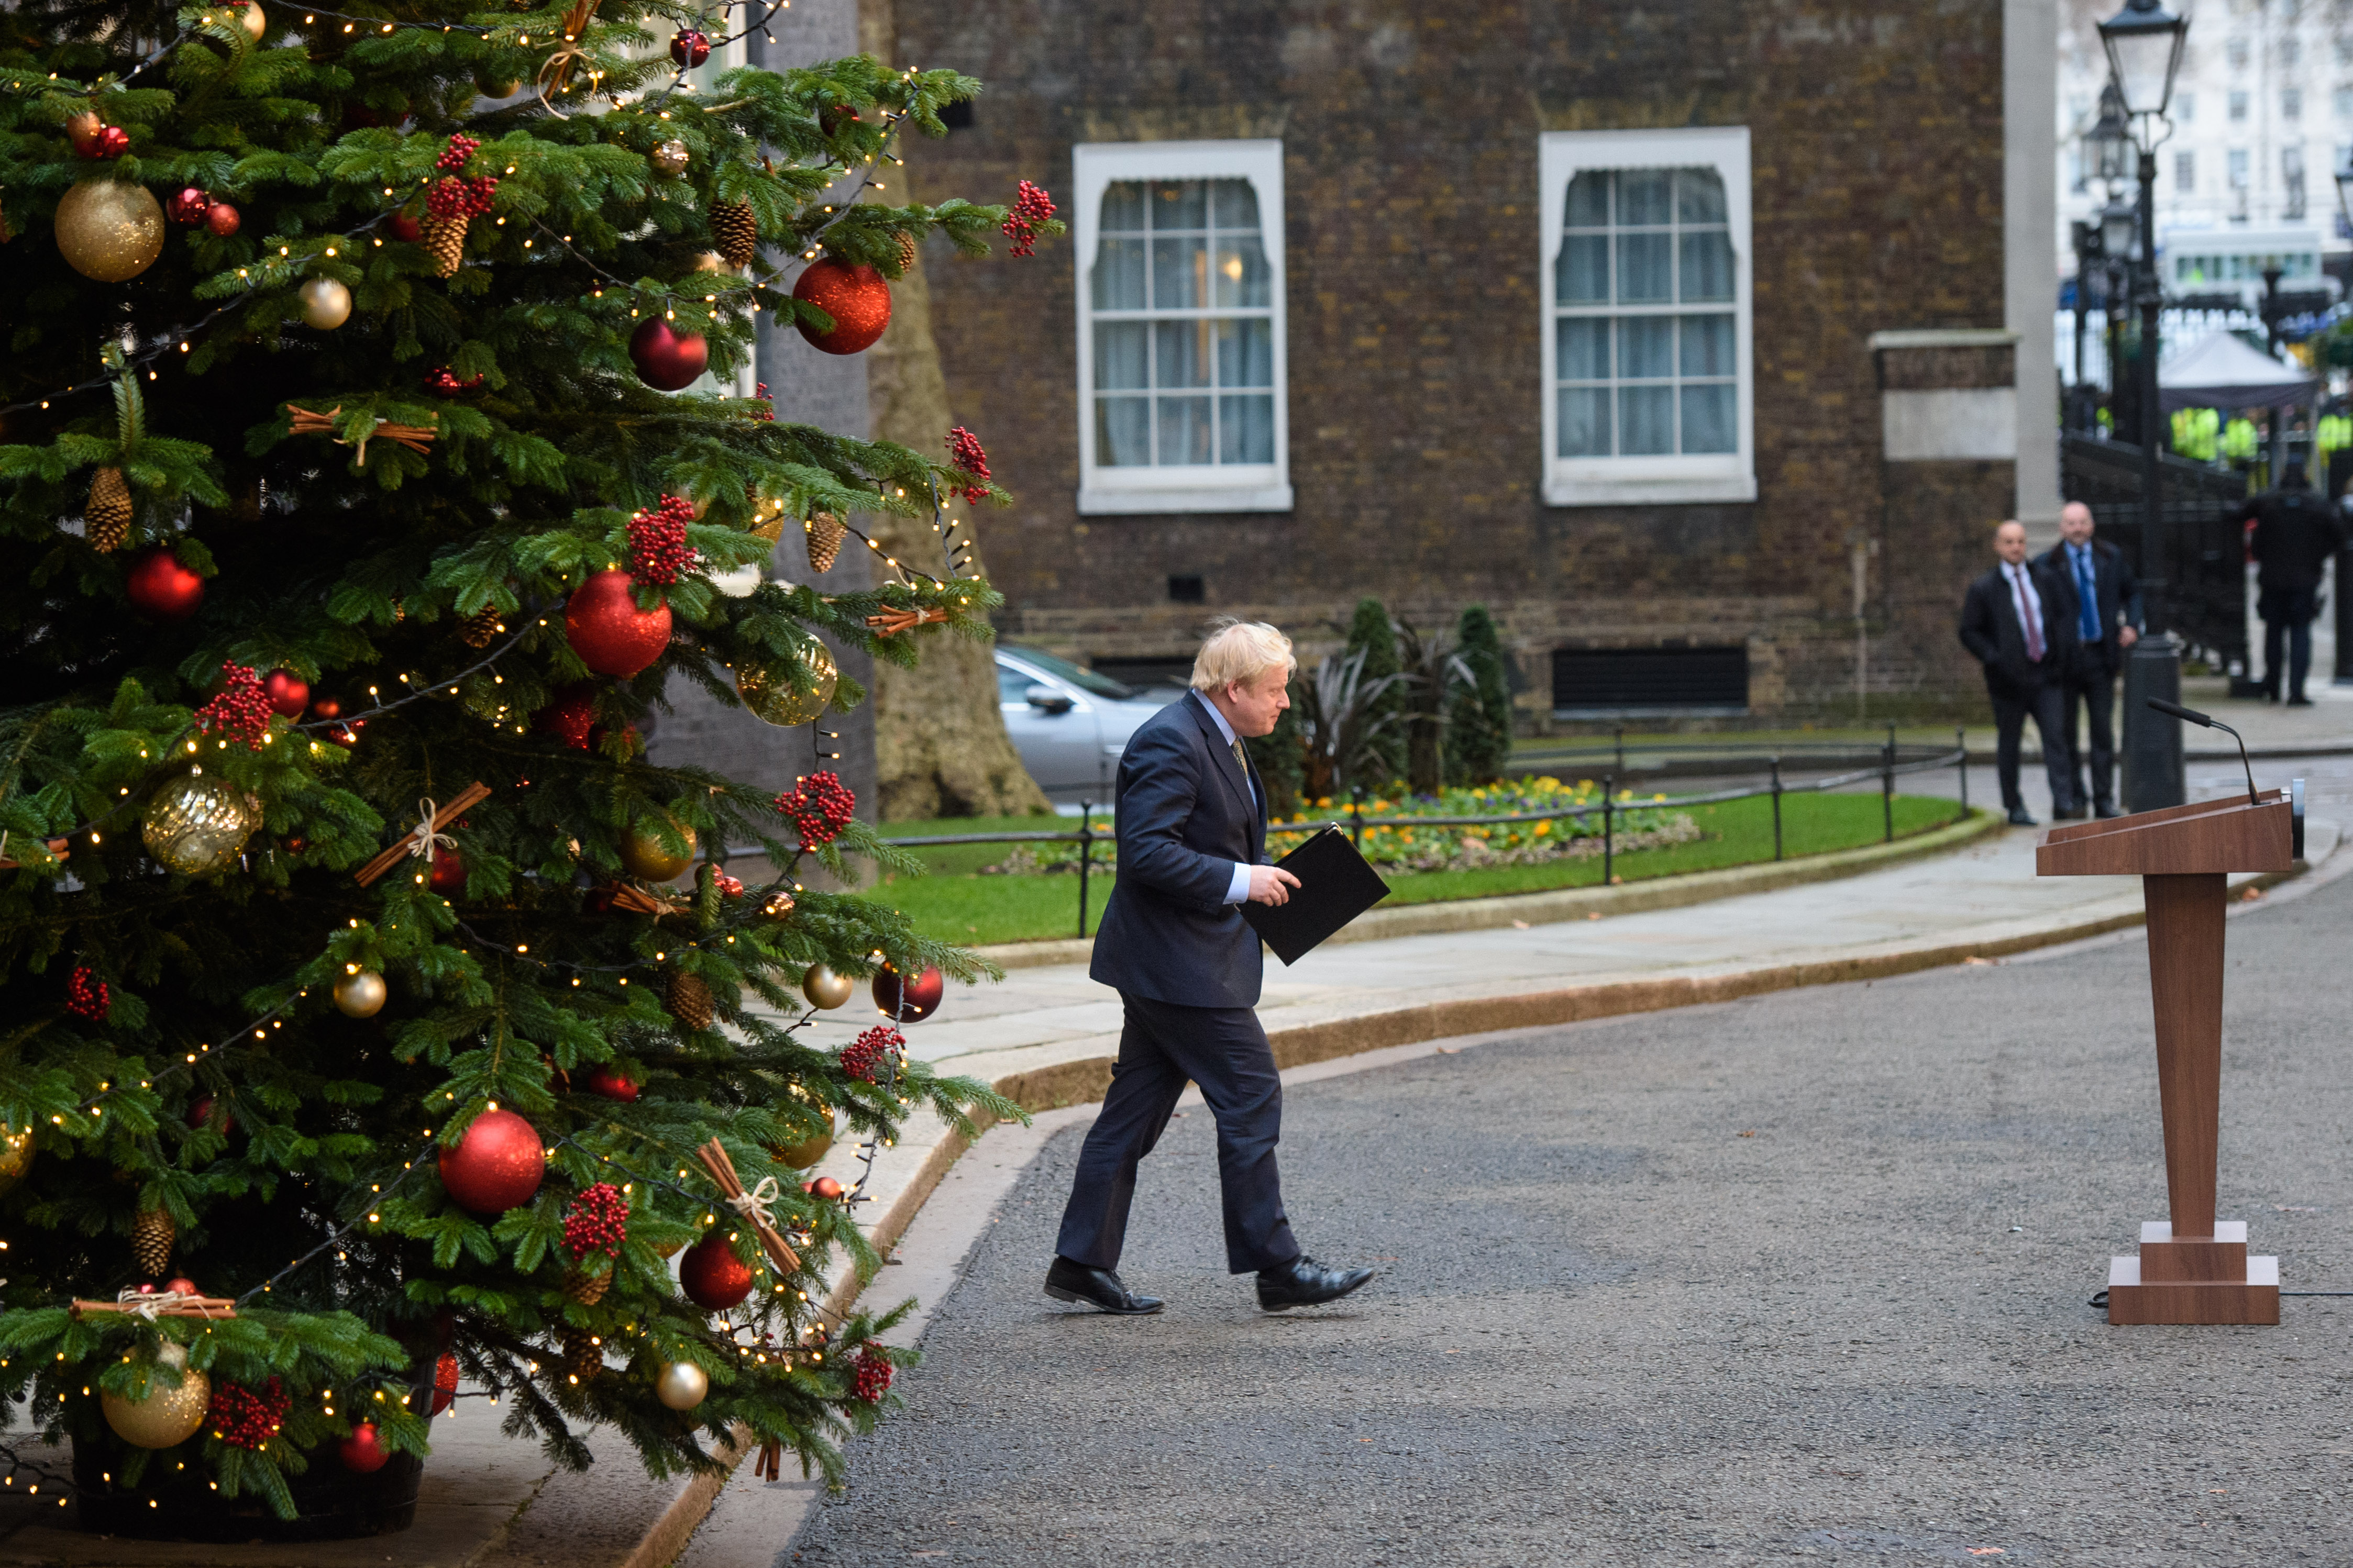 Prime Minister Boris Johnson speaks to the media in Downing Street, London, after the Conservative Party was returned to power in the General Election with an increased majority. Boris Johnson Picture date: Friday December 13, 2019. Photo credit should read: Matt Crossick/Empics